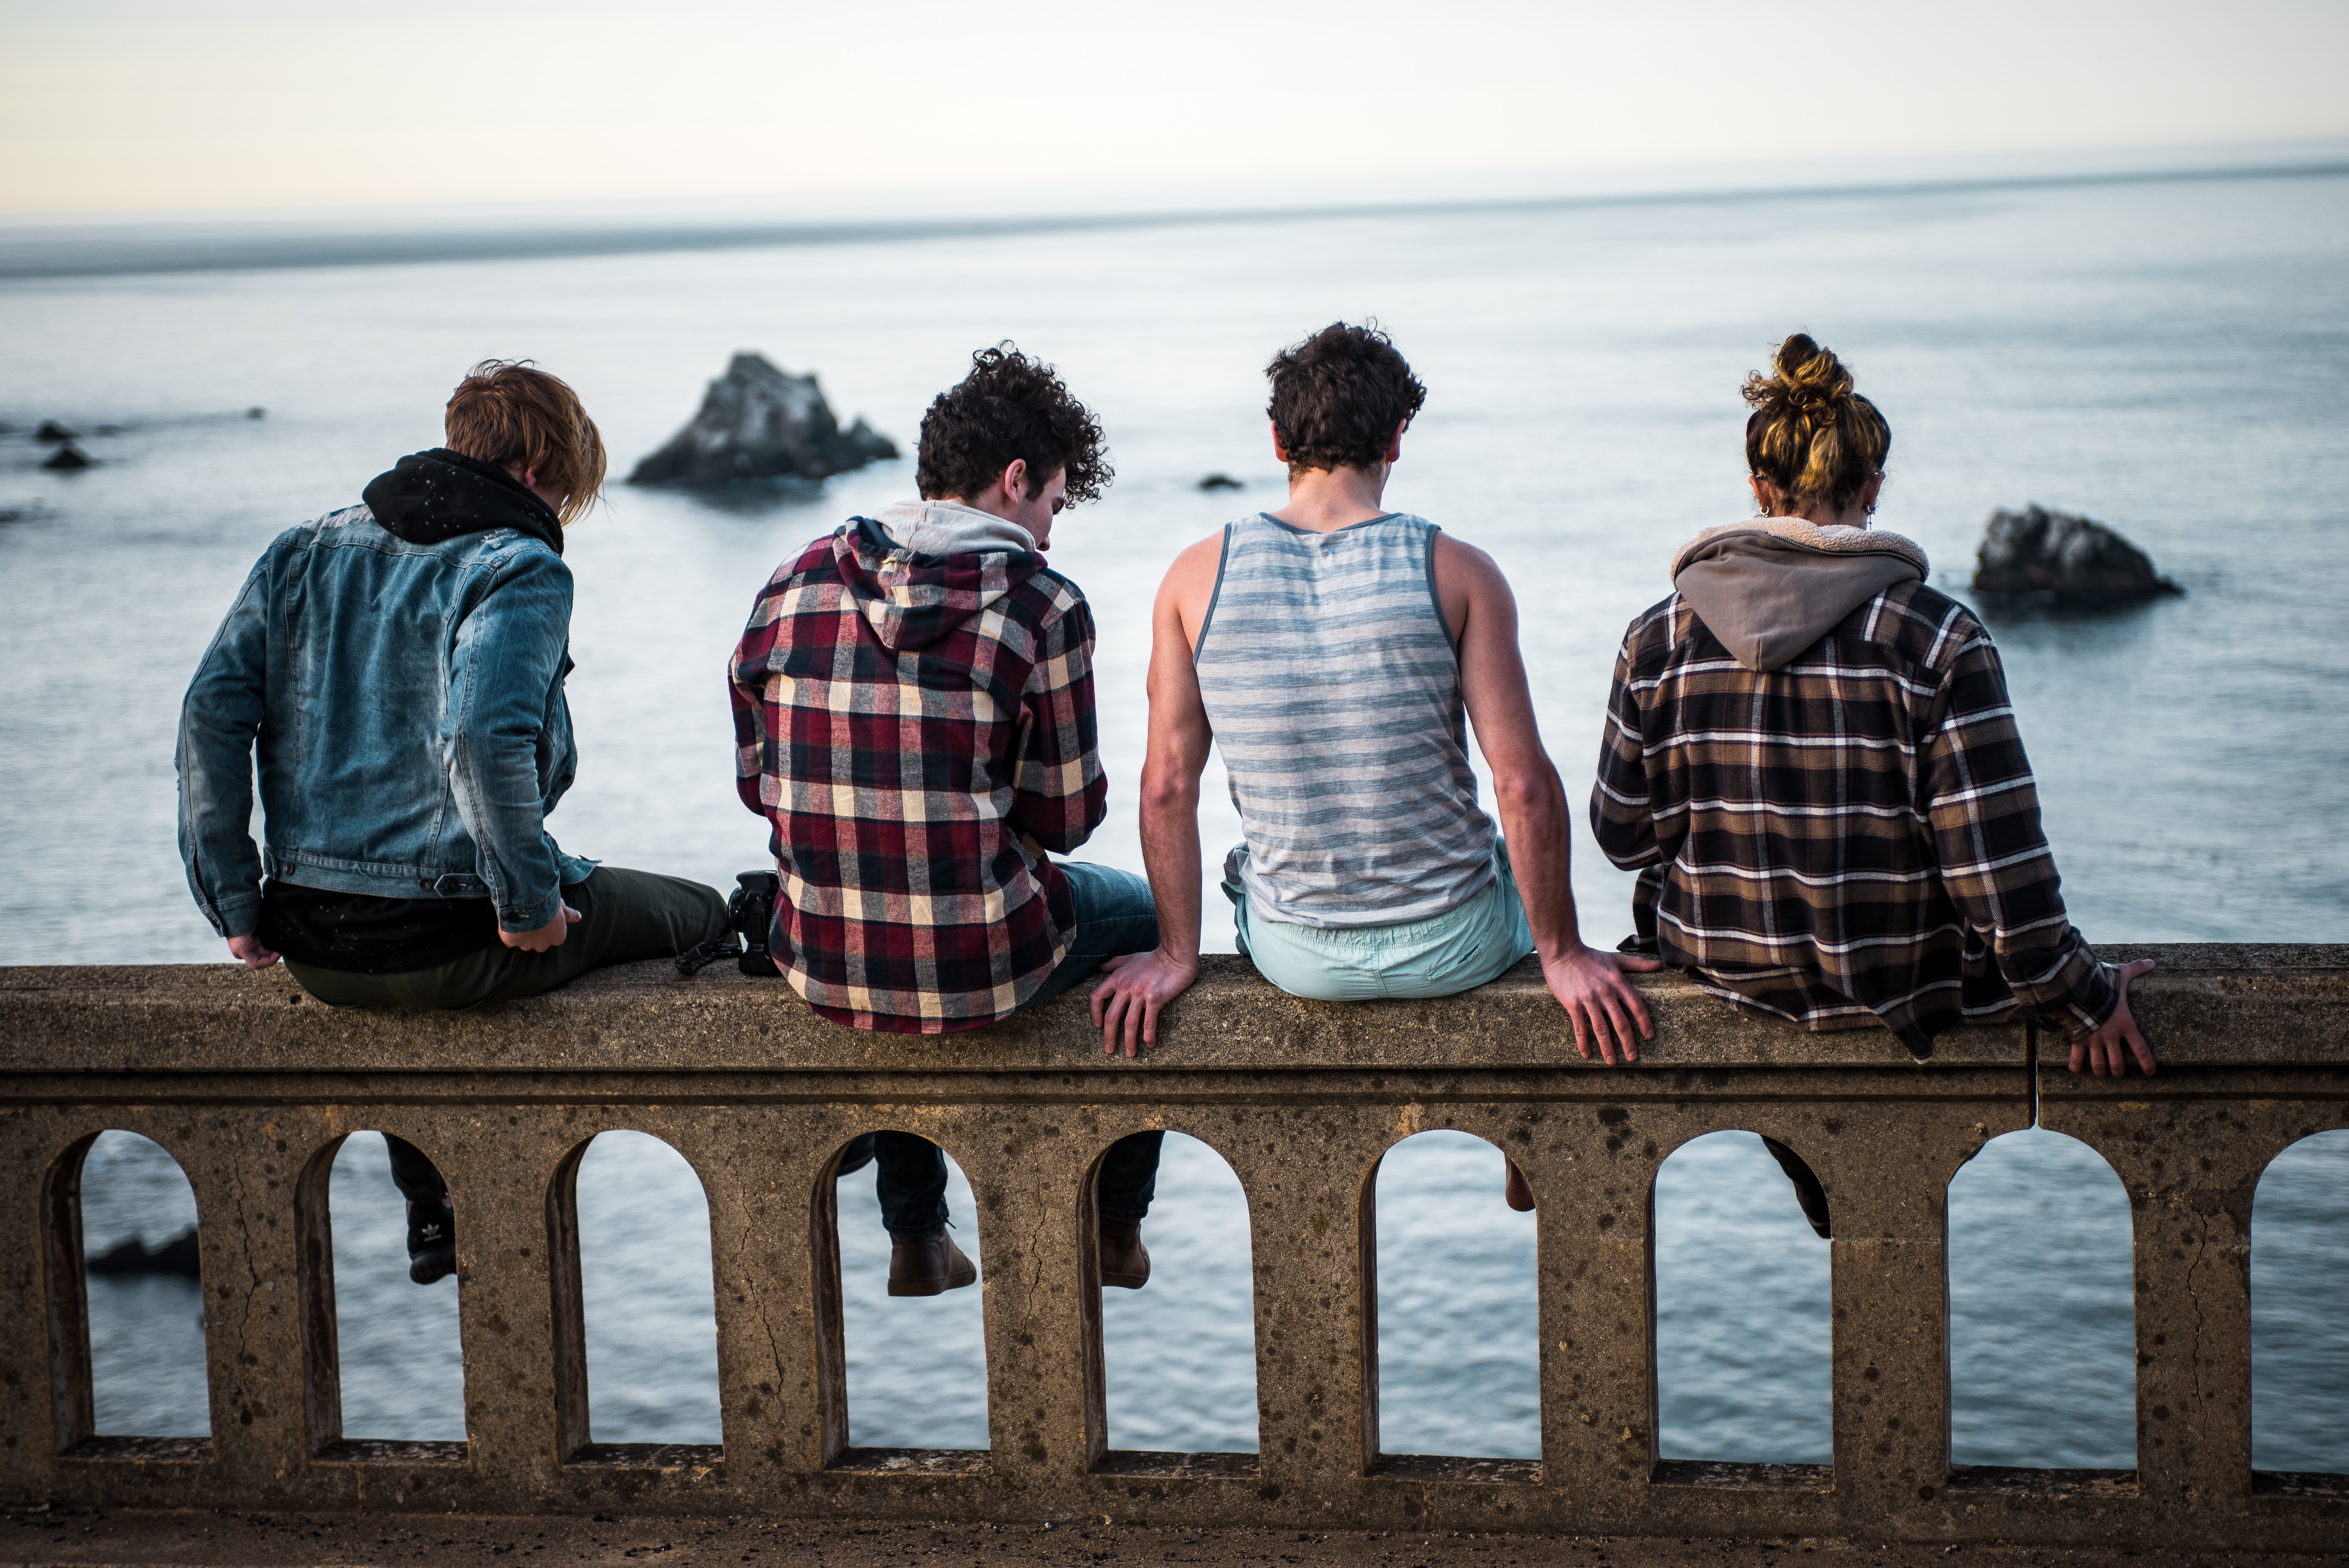 group of friends sitting on wall overlooking ocean